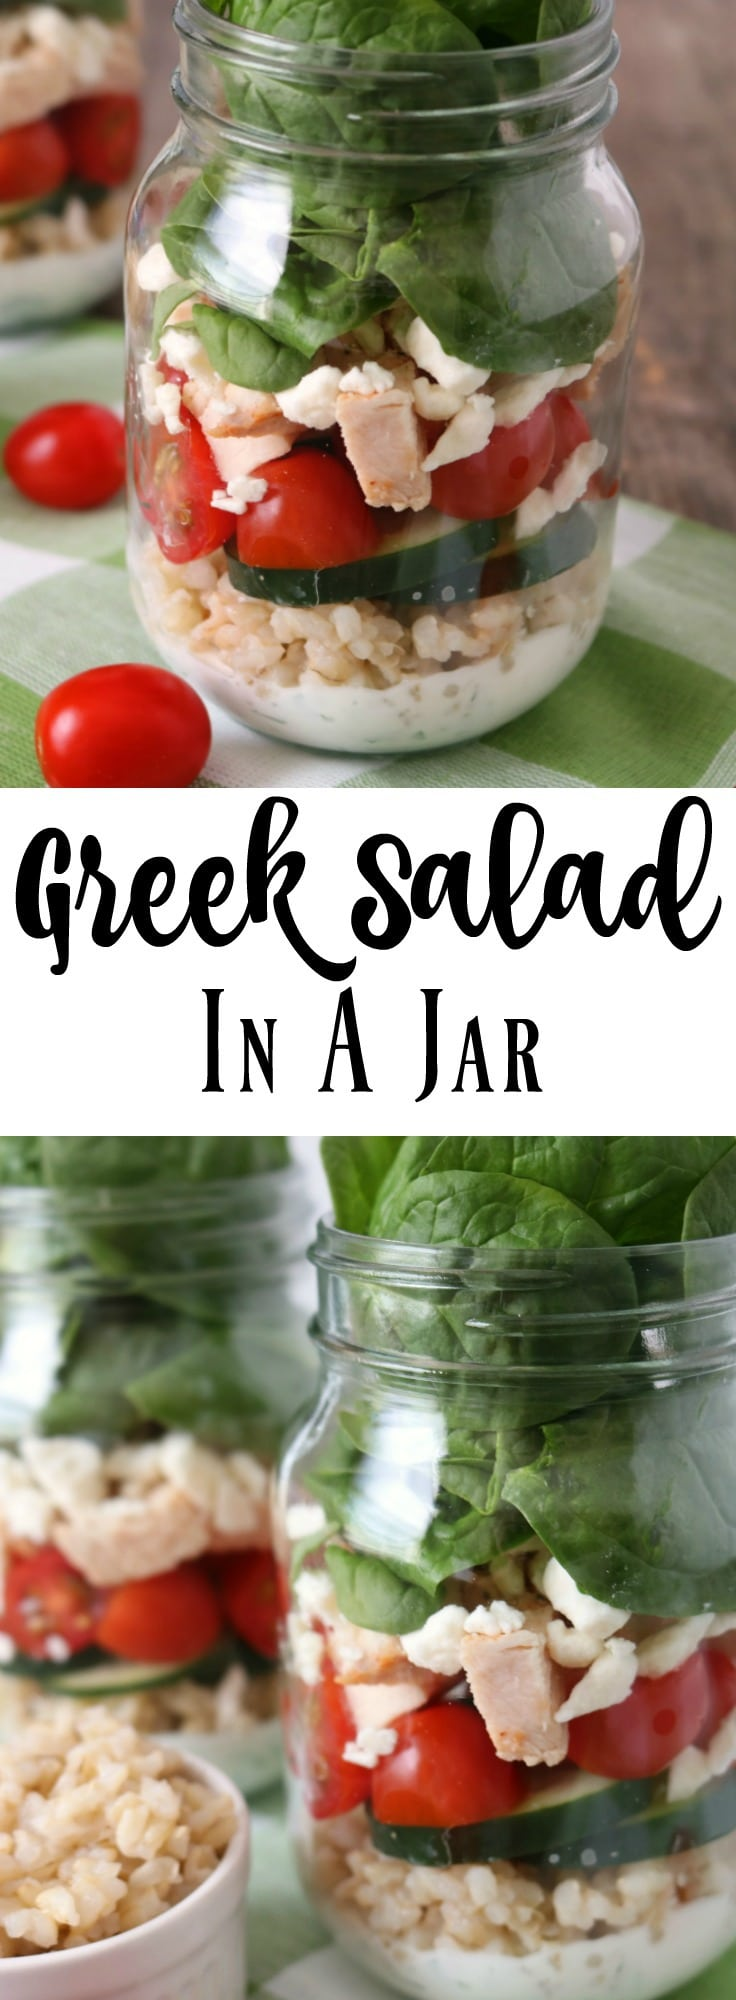 Make lunch meal prep easy and delicious with a Mason Jar and Salad. Try this Greek Salad in a jar recipe.